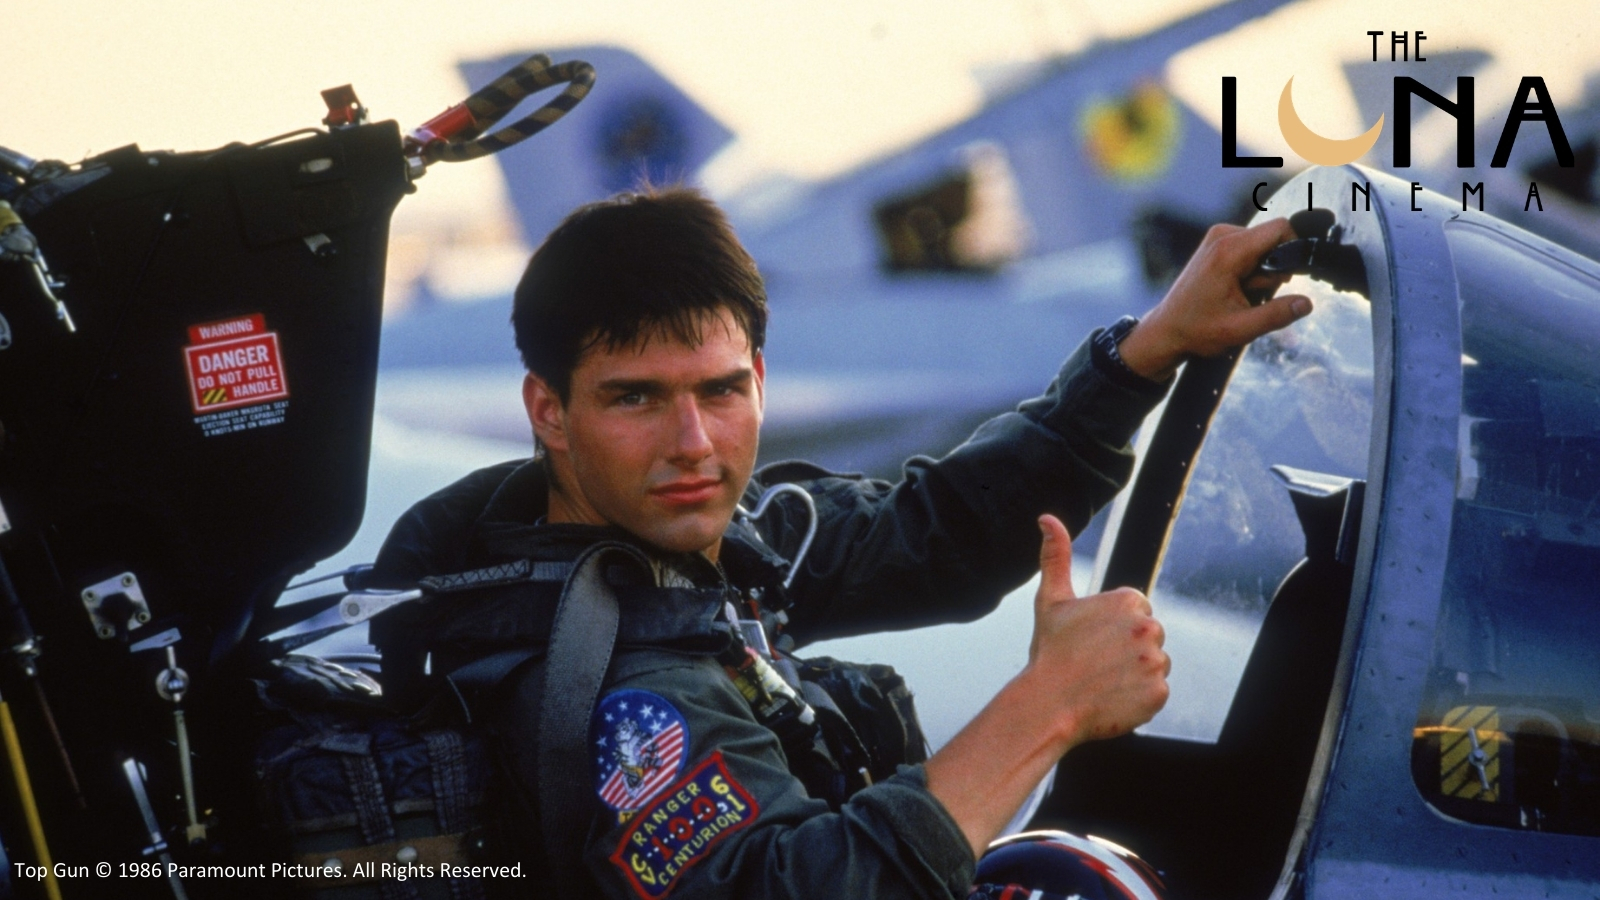 Top Gun © 1986 Paramount Pictures. All Rights Reserved.